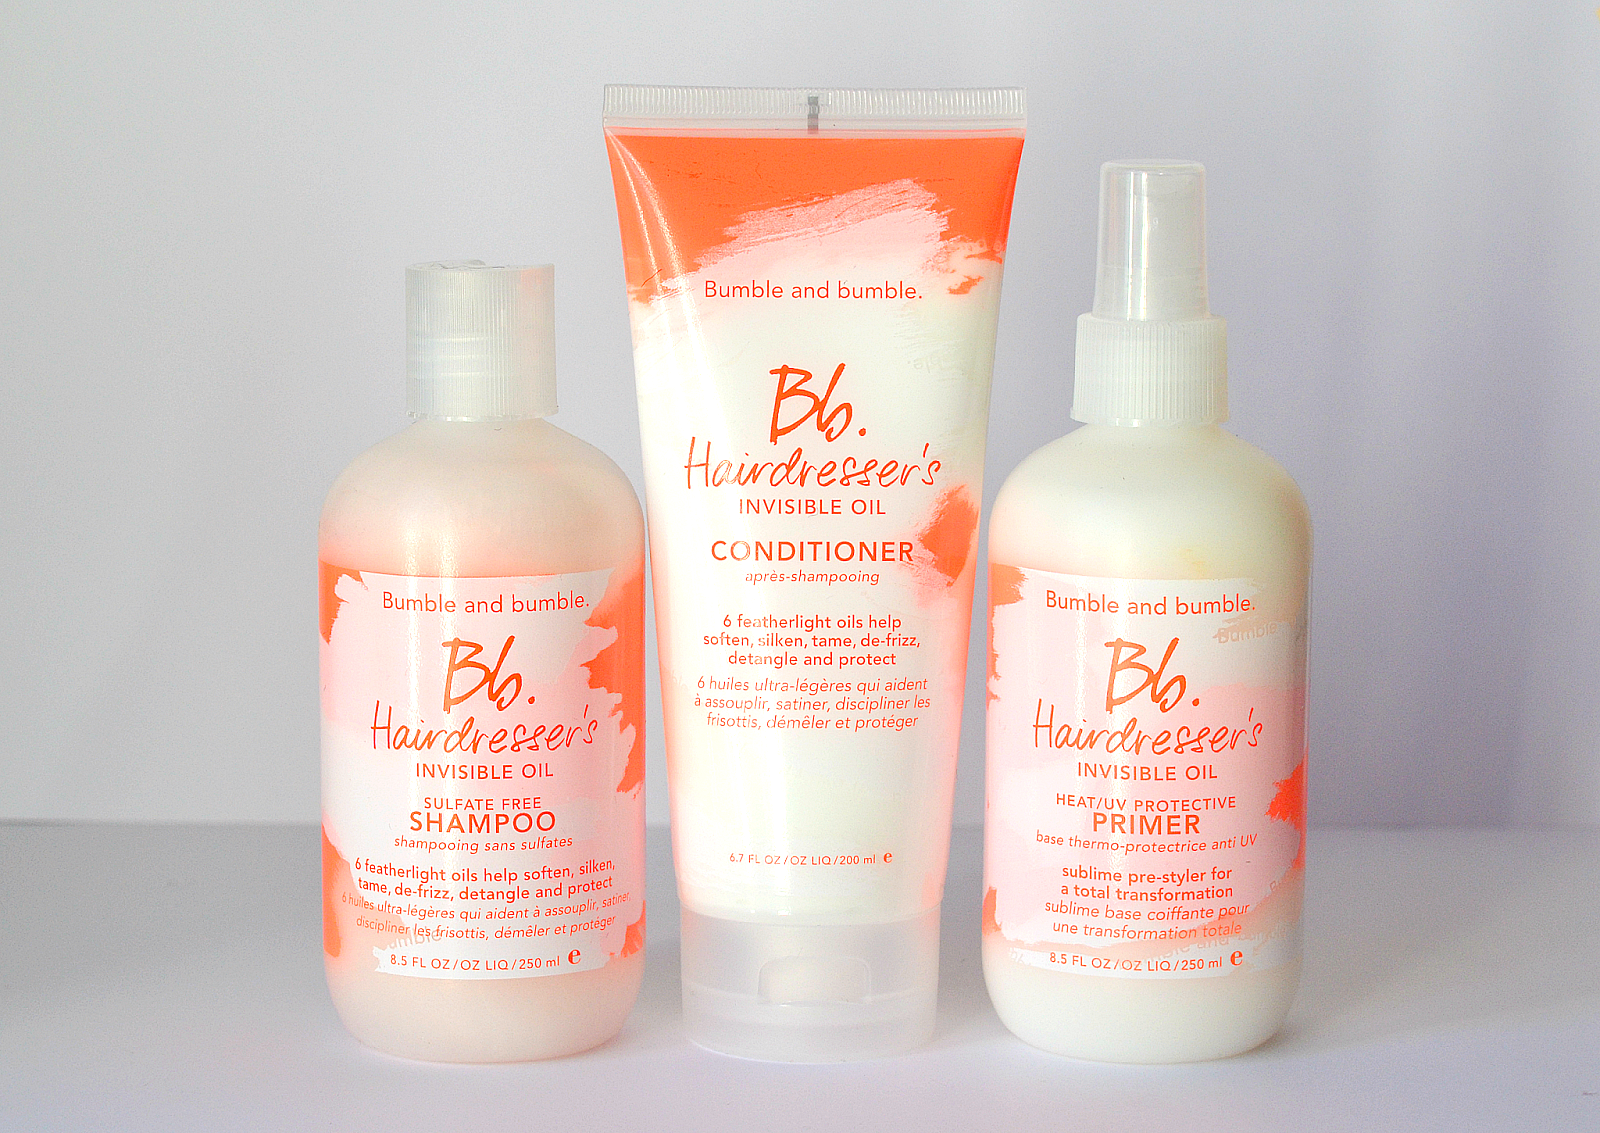 Bumble & Bumble Hairdresser's Invisible Oil Primer, Shampo, Conditioner 1